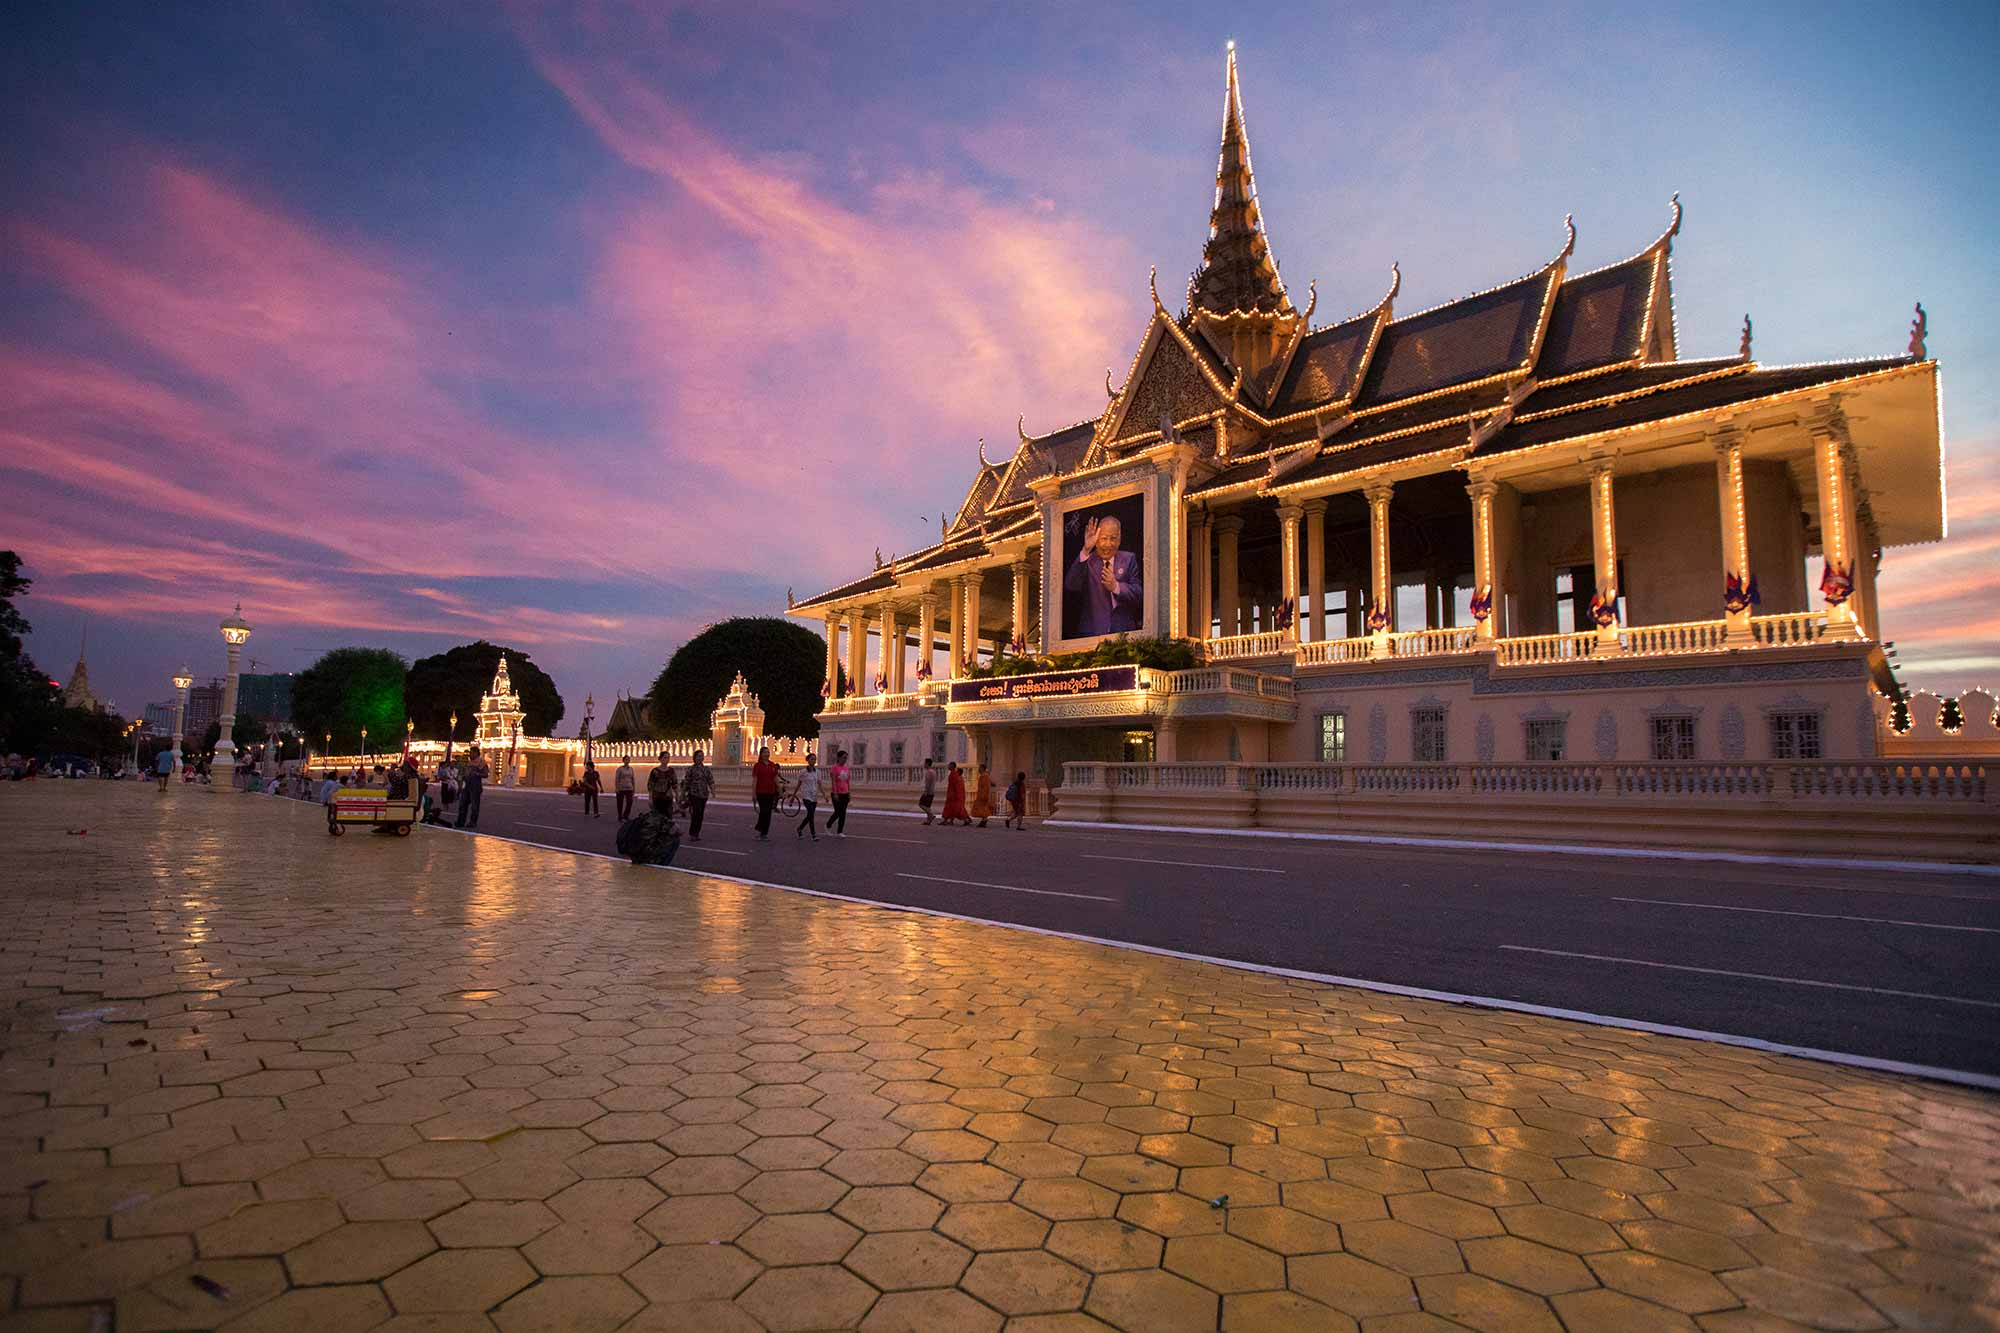 The area around the Royal Palace in Phnom Penh is frequented a lot once the sun goes down. © ULLI MAIER & NISA MAIER